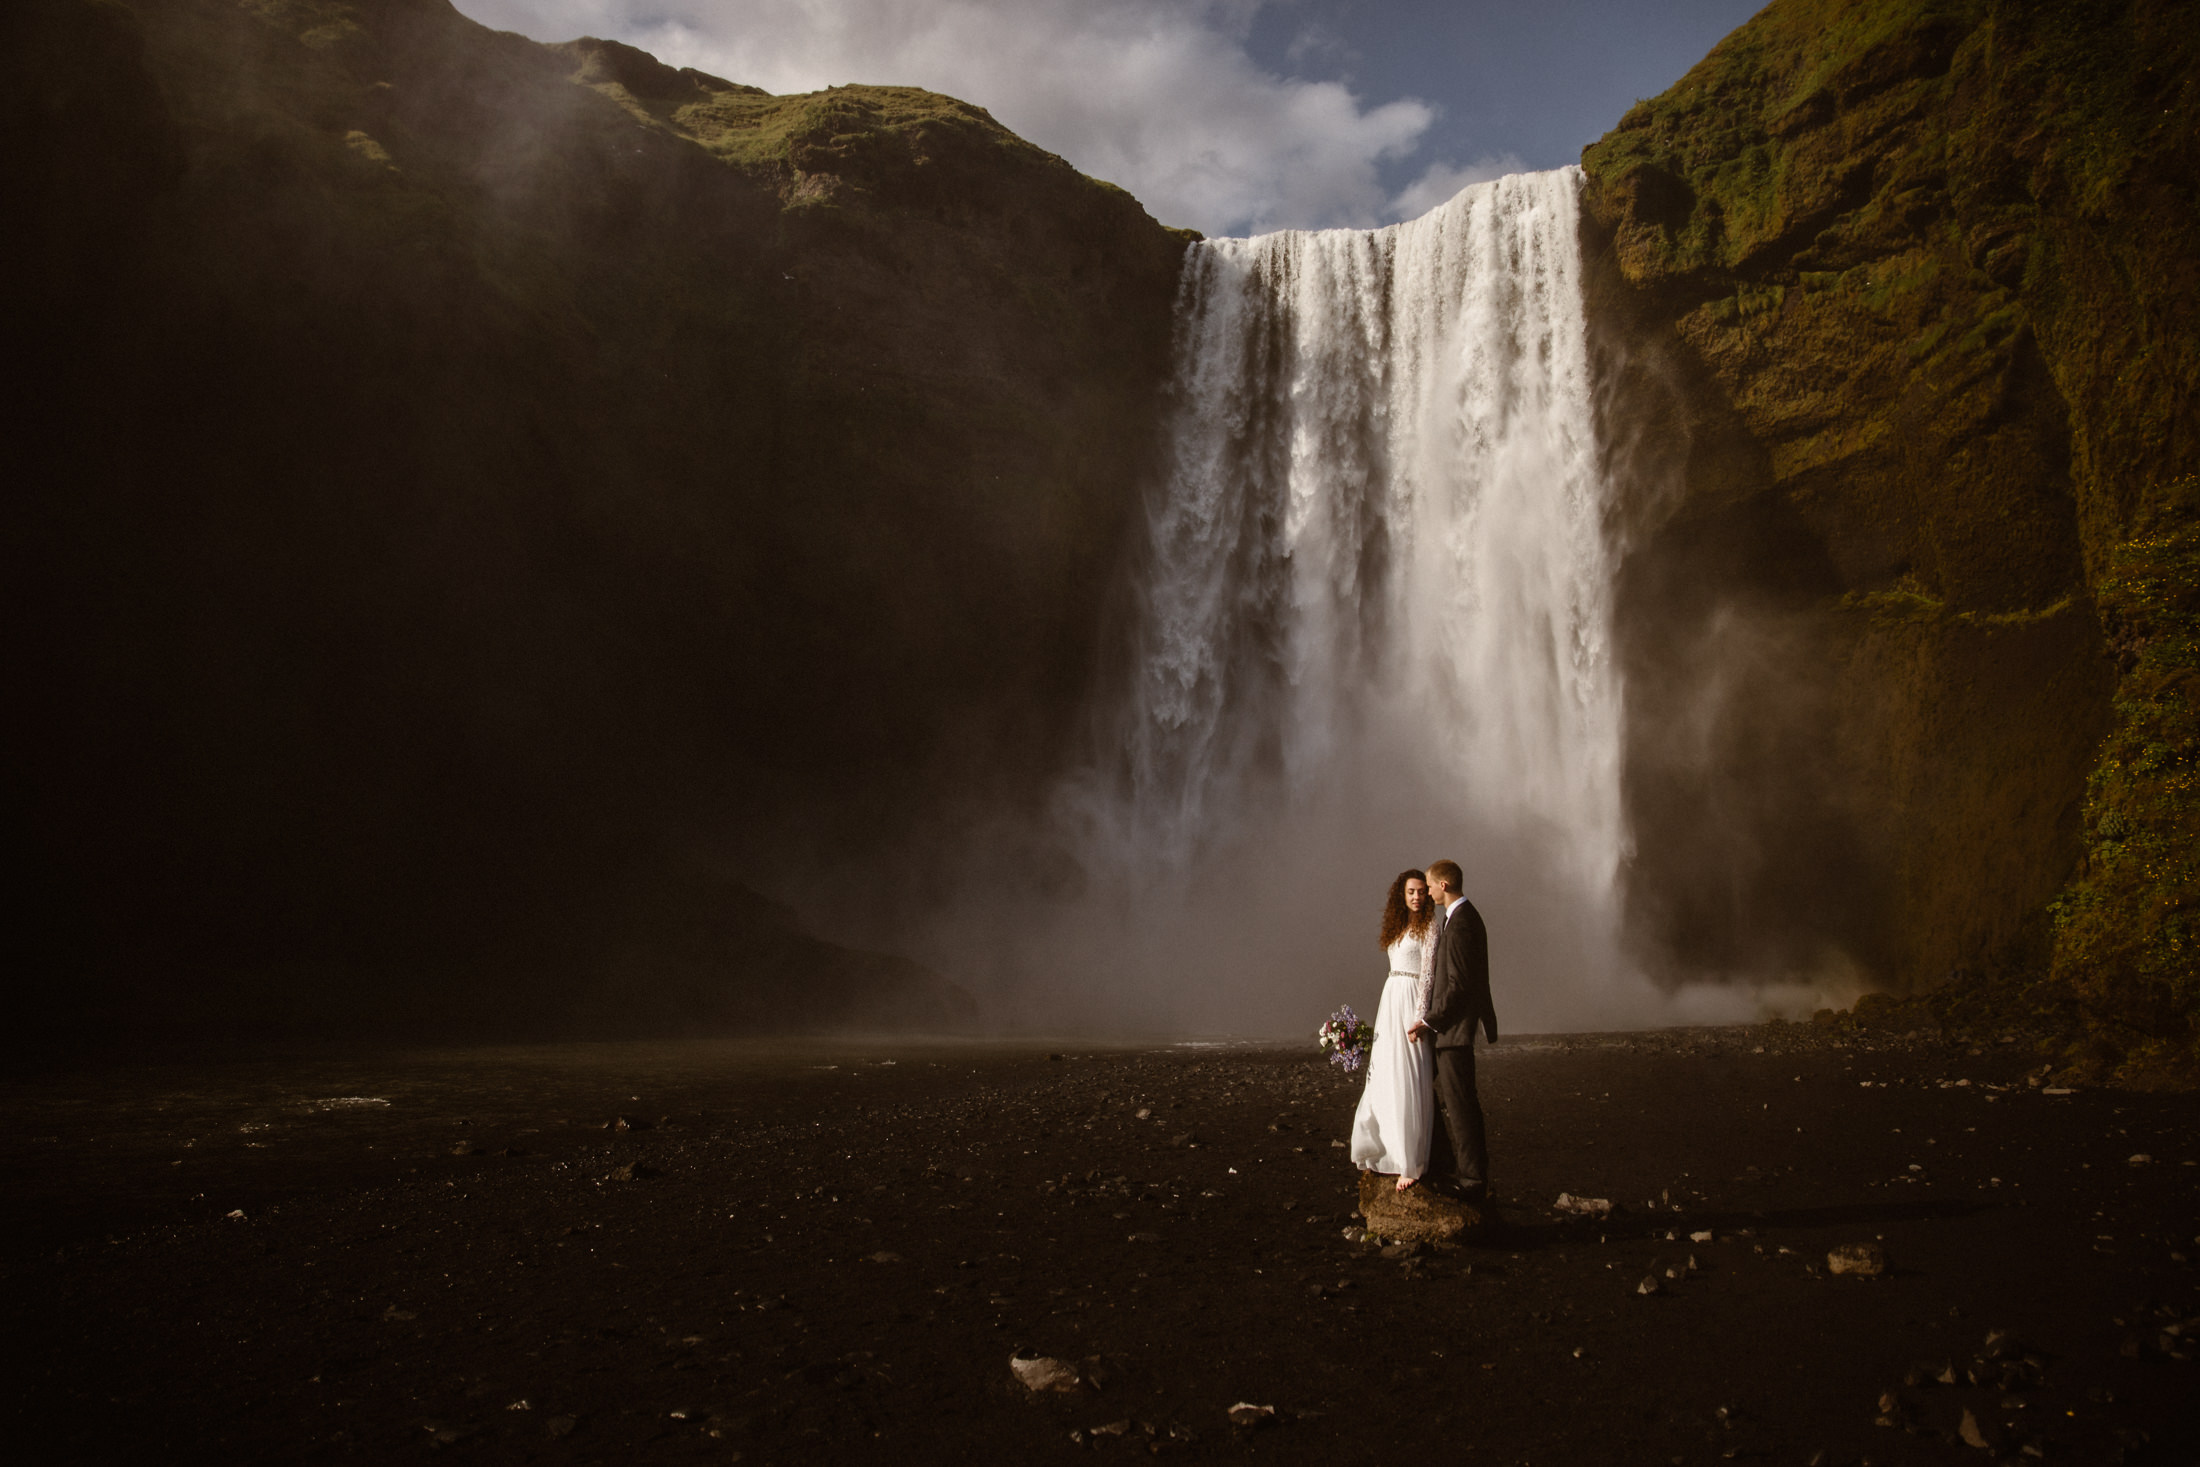 A bride and groom stand in front of a raging waterfall in Iceland. Why elope in Iceland you might ask? So you can get married somewhere like this!